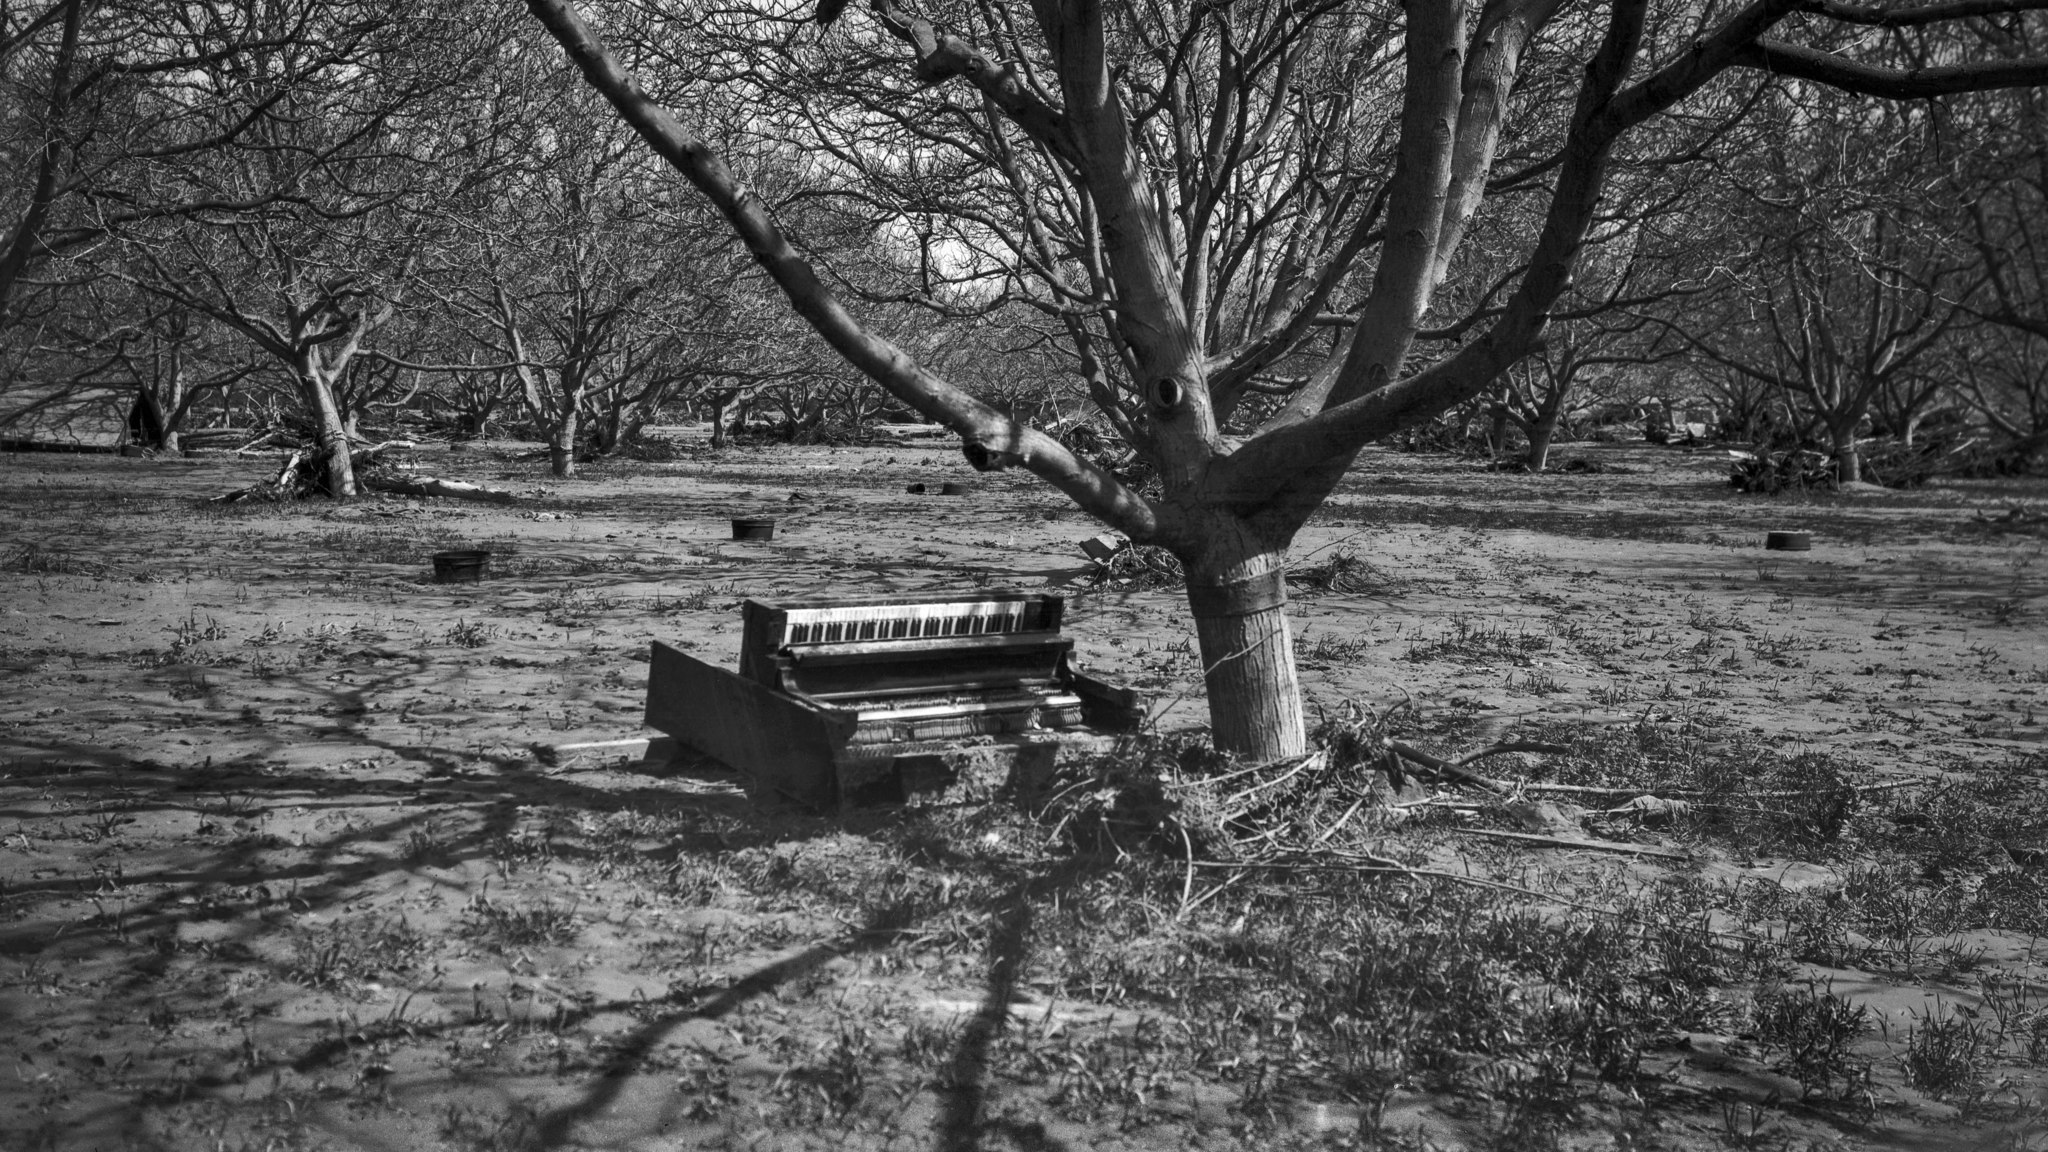 March 1928: Damaged piano in a orchard following the flood caused by the failure of the Saint Franci